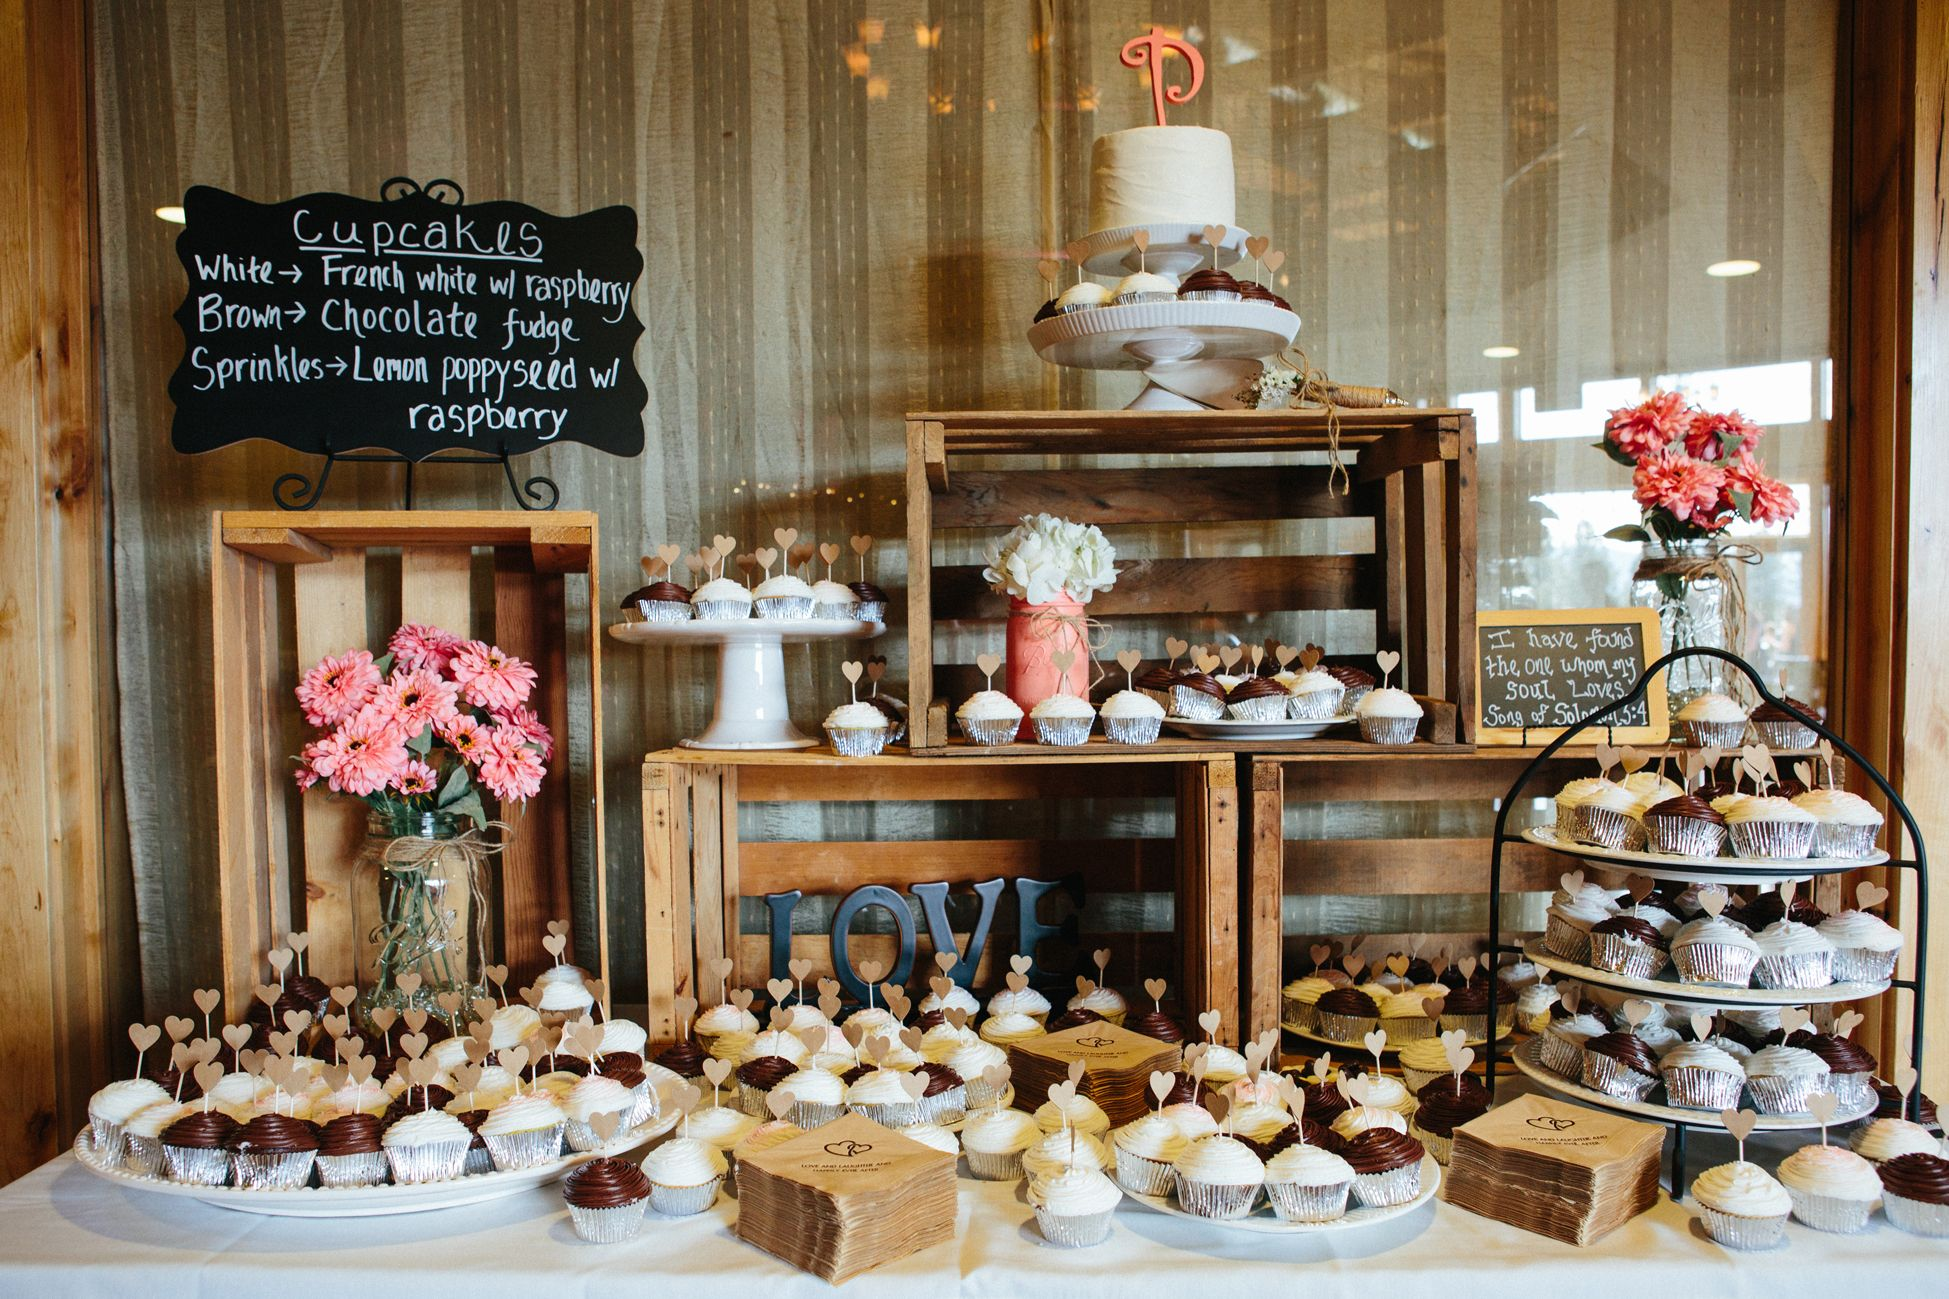 Rustic Dessert Bar Display